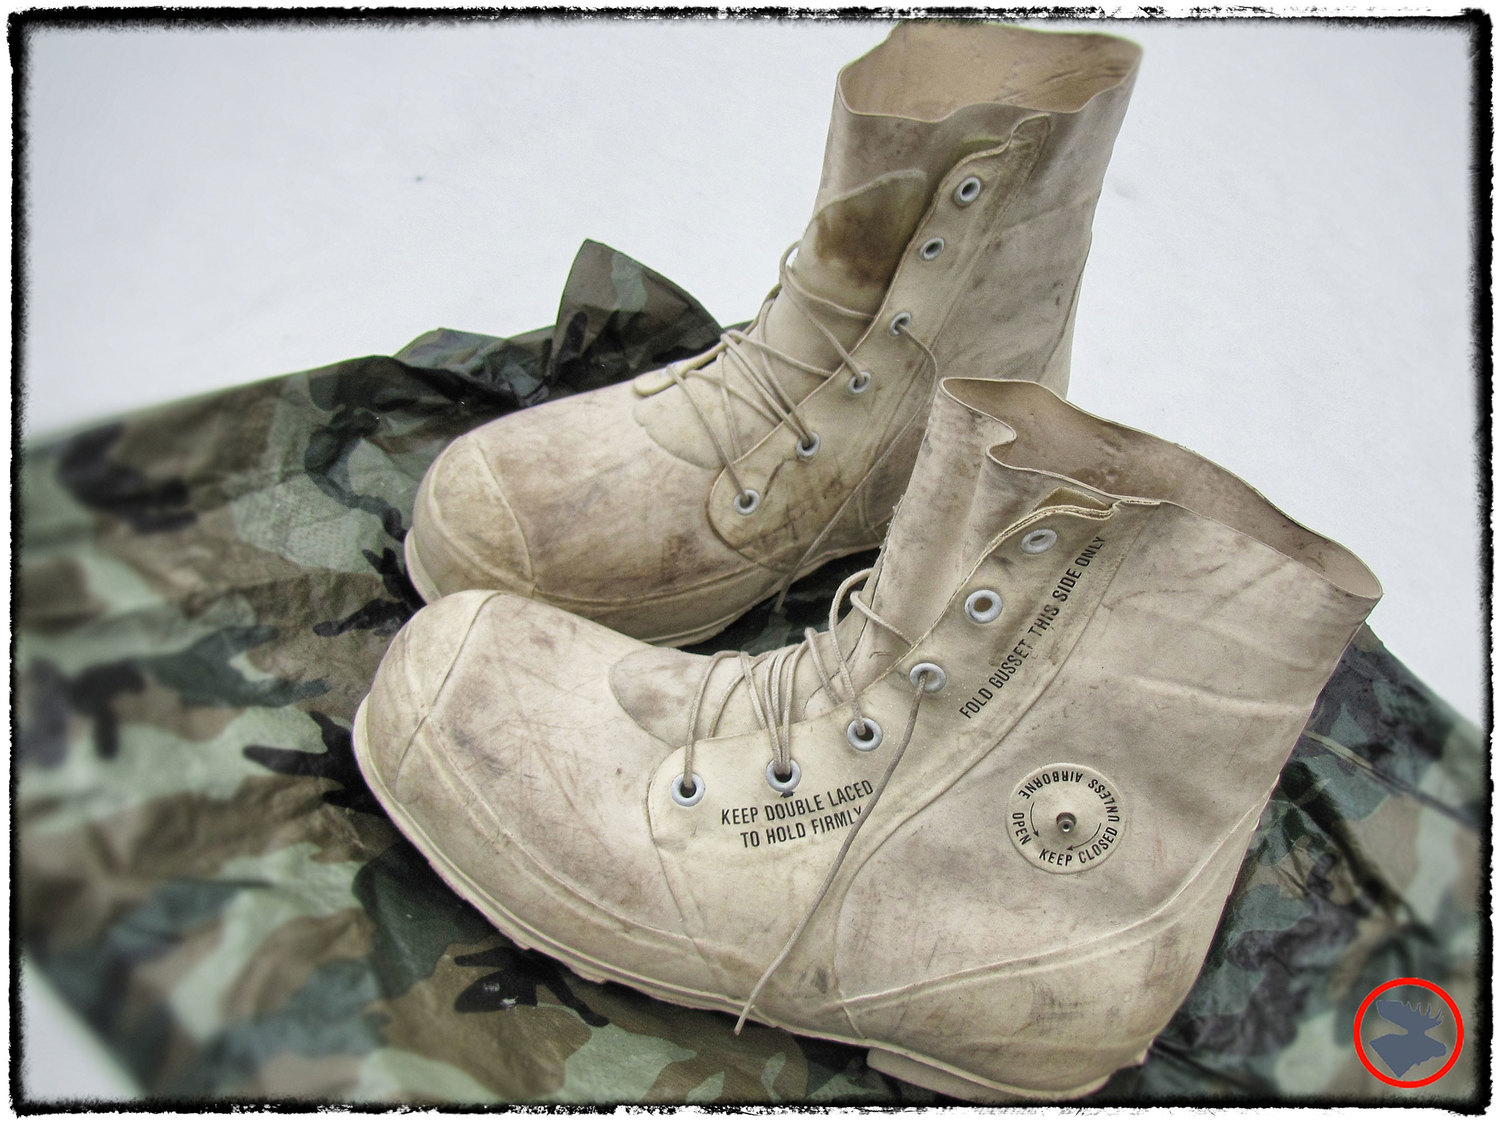 f1c357c482d Bunny Boots: Fail-Safe Winter Footwear — Bull Moose Patrol